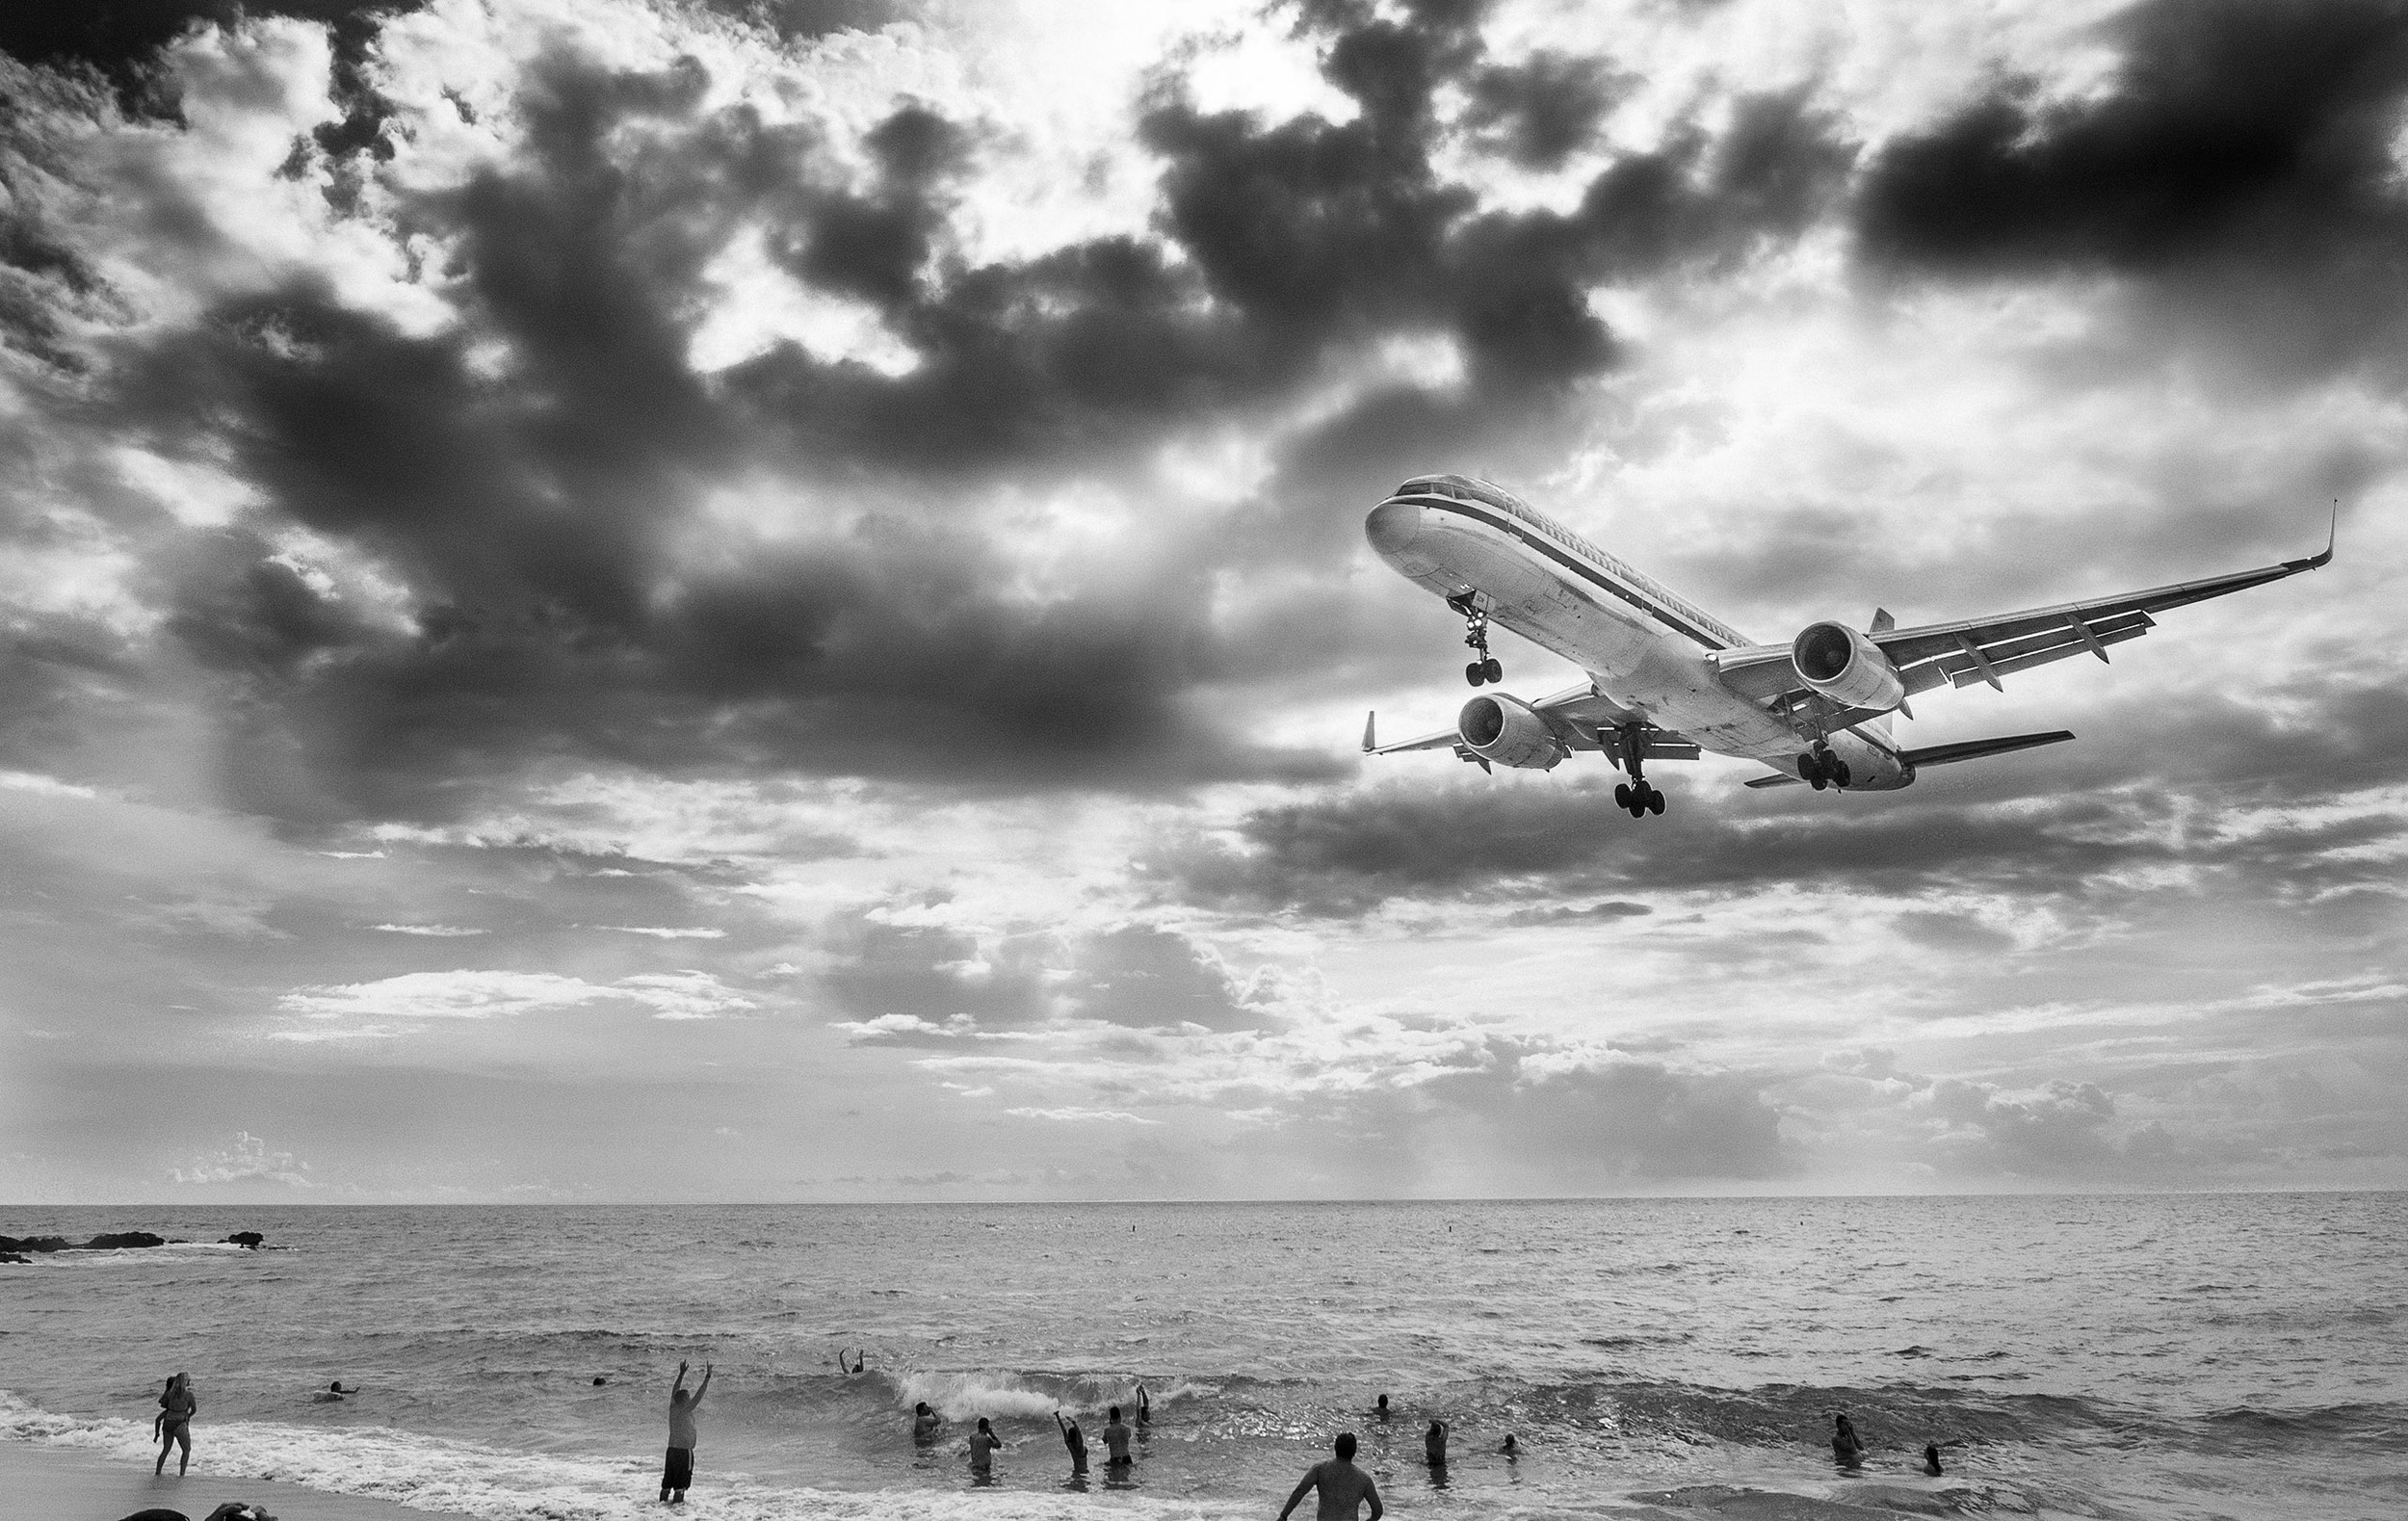 Maho Beach Saint Marteen by Eric Berger